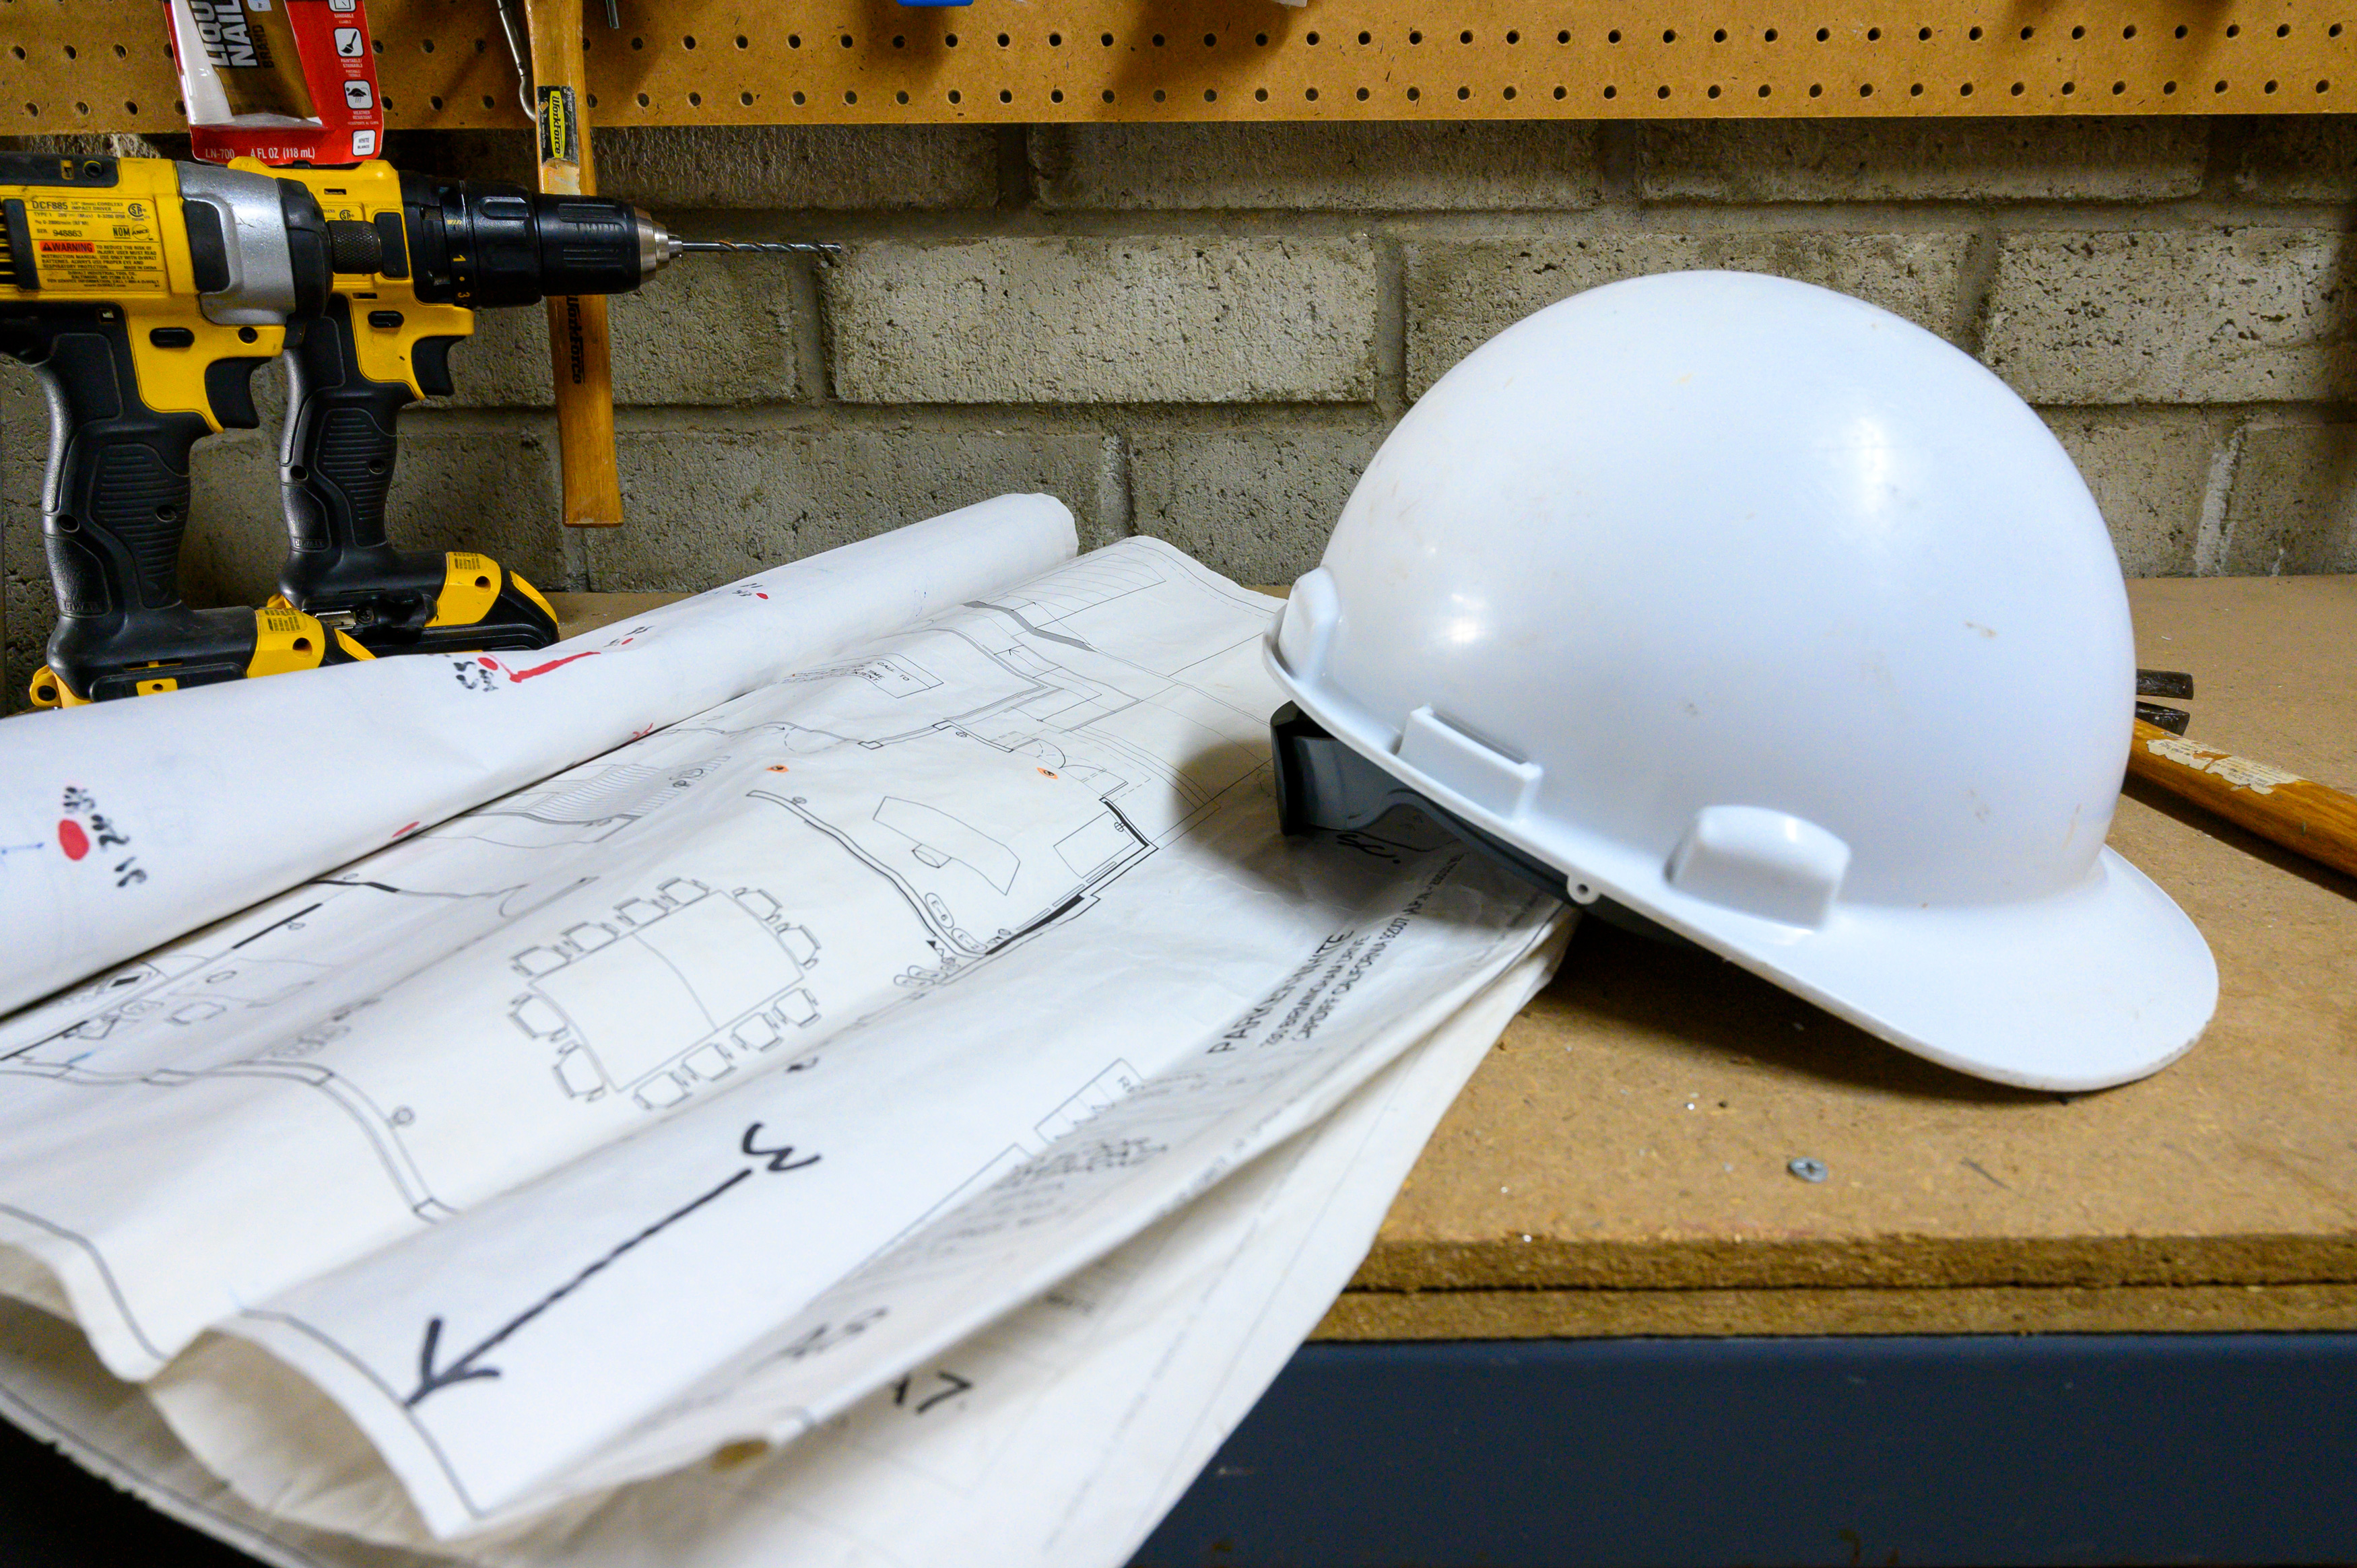 How Confident Are You With Your Construction Partner?